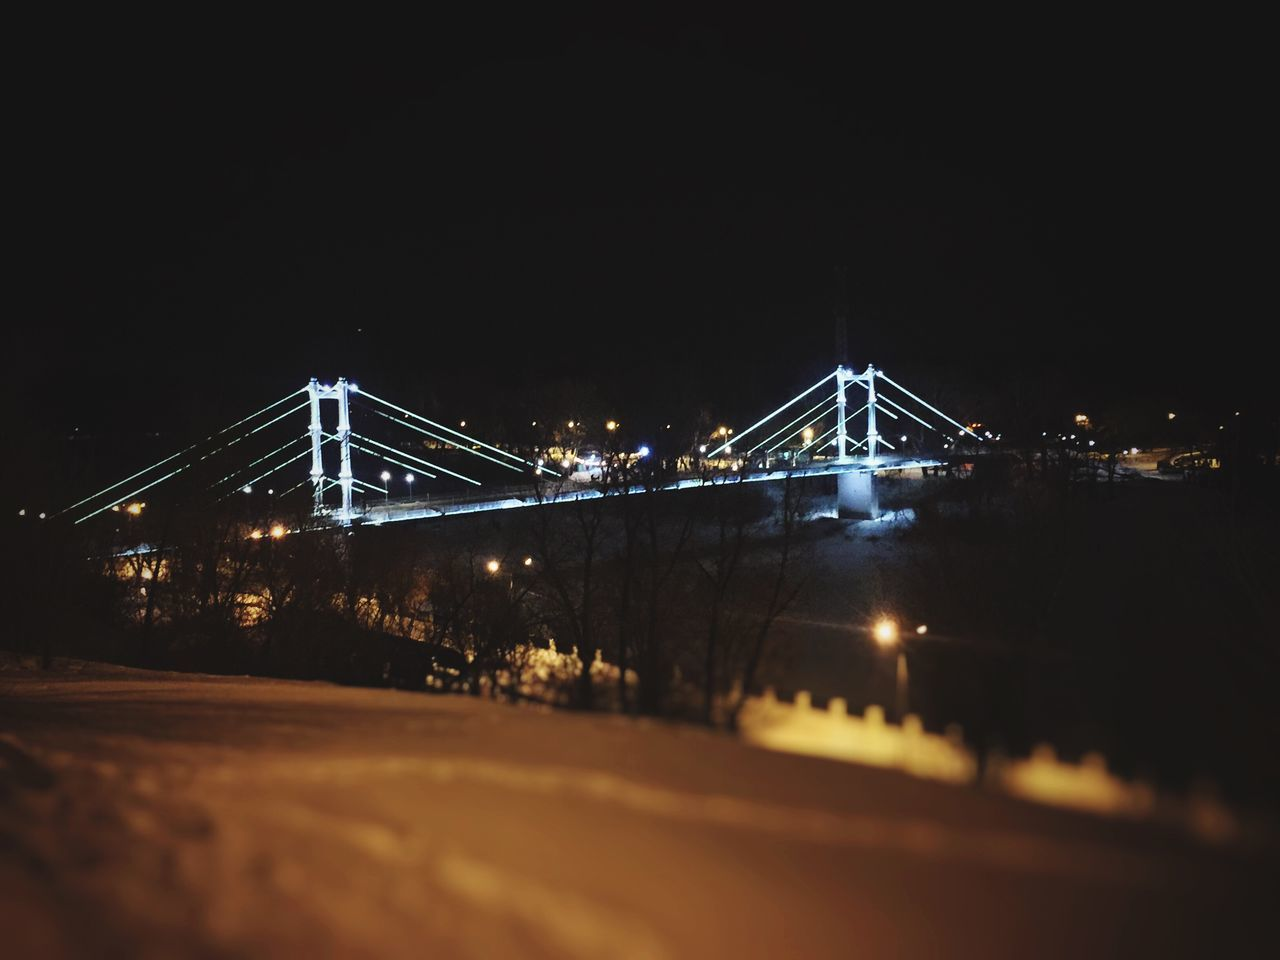 Night Illuminated Connection Bridge - Man Made Structure No People Transportation Suspension Bridge Sky Architecture Outdoors IPhoneography Iphone6 image by @222artem